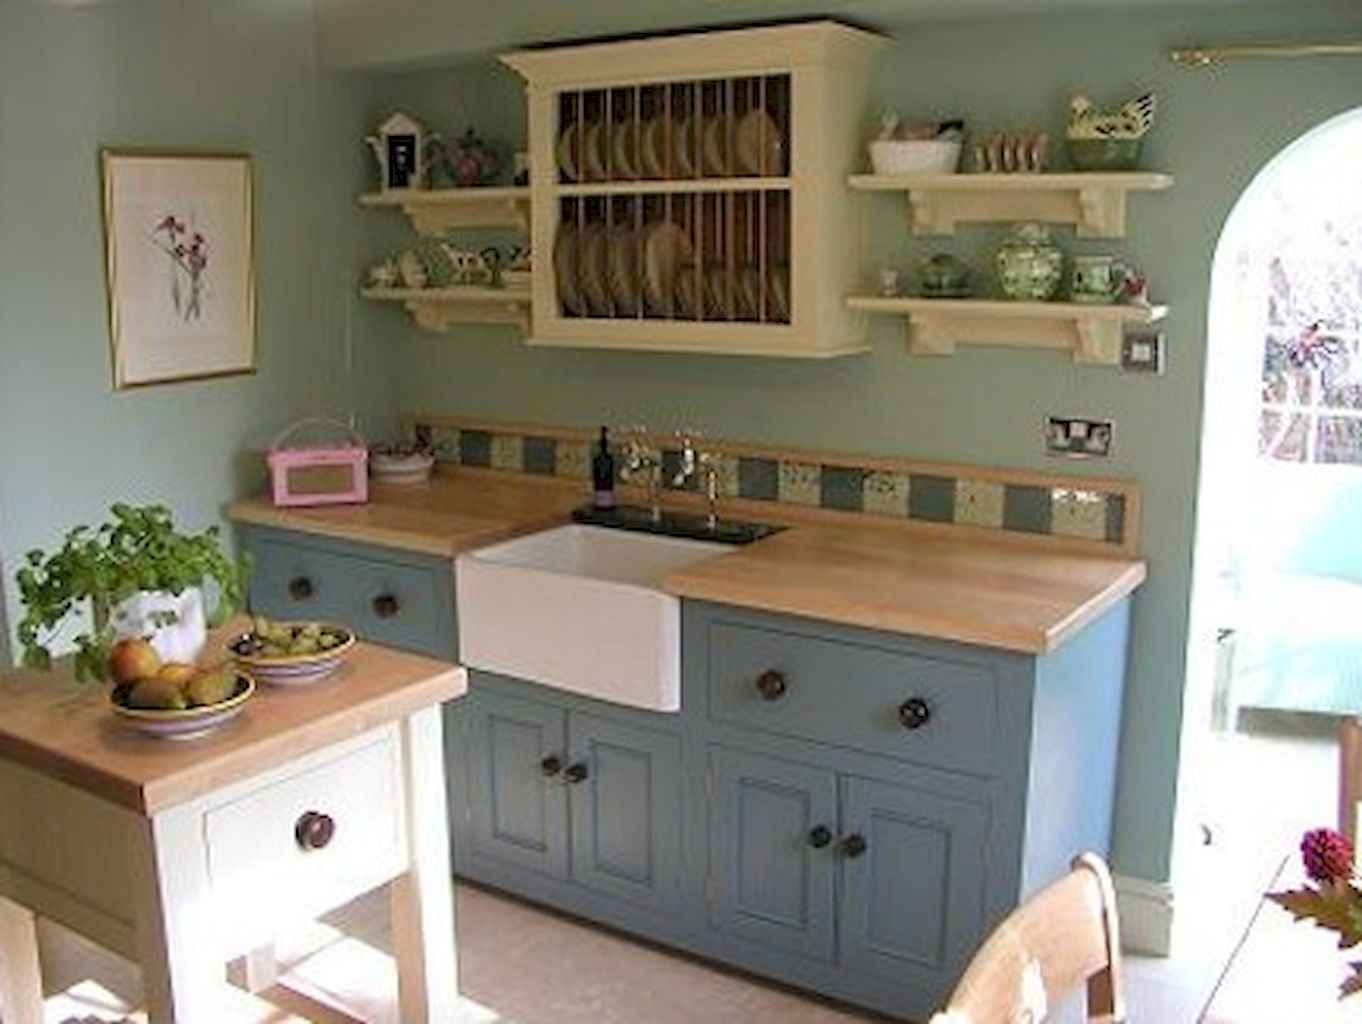 60 Decorating Kitchen With English Country Style 20